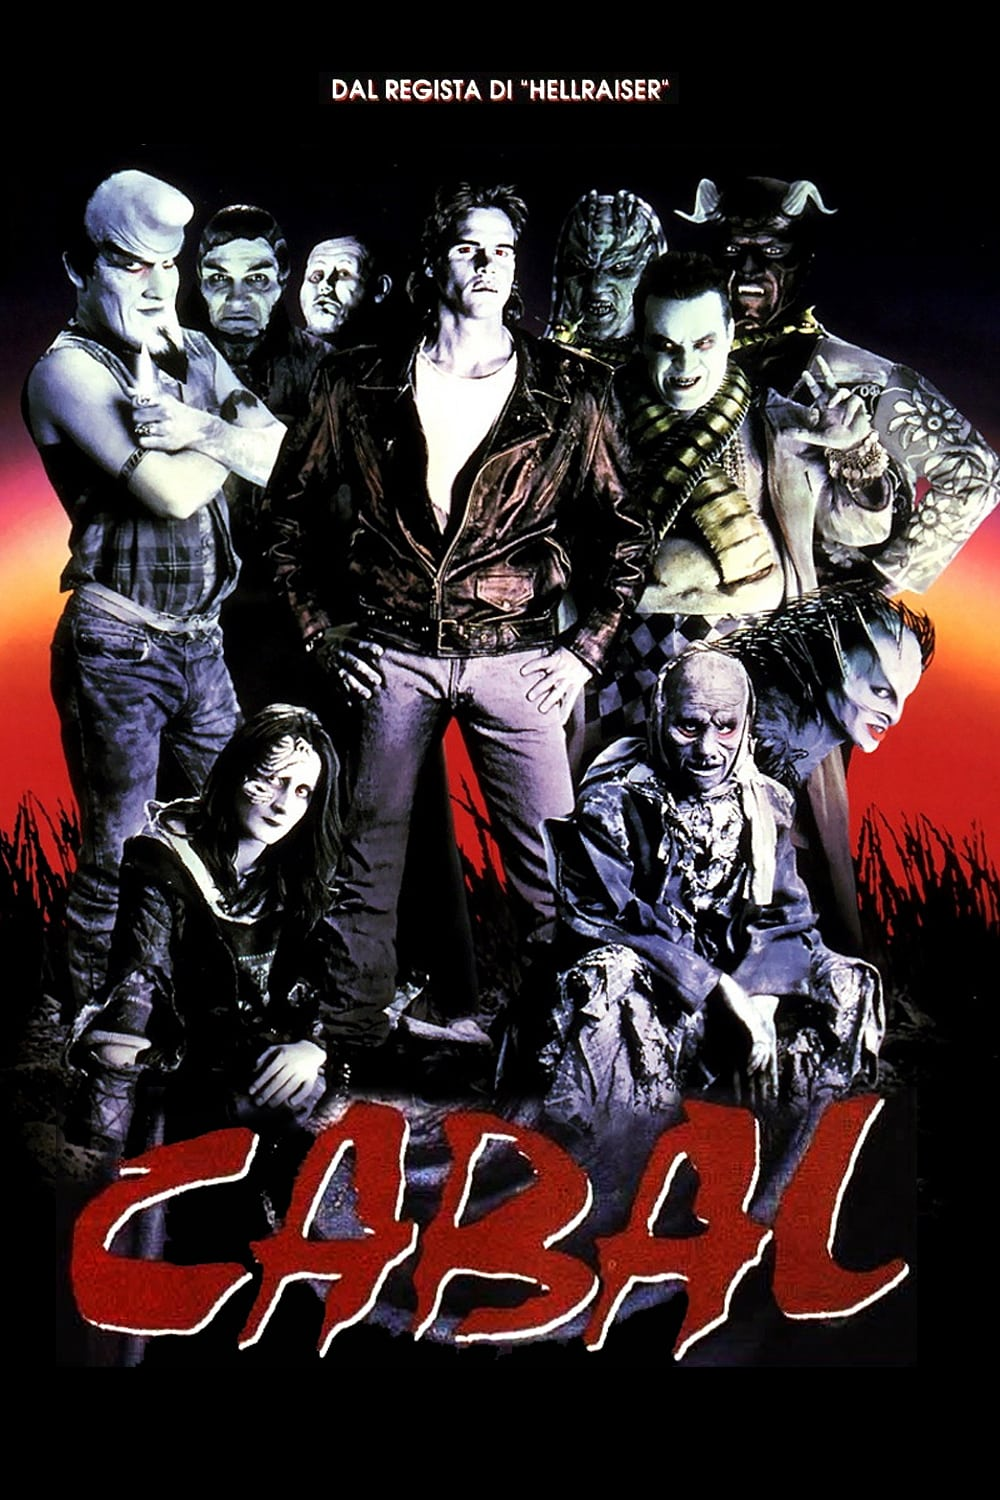 Cabal - Nightbreed - Fantasy Horror Film Poster 1990